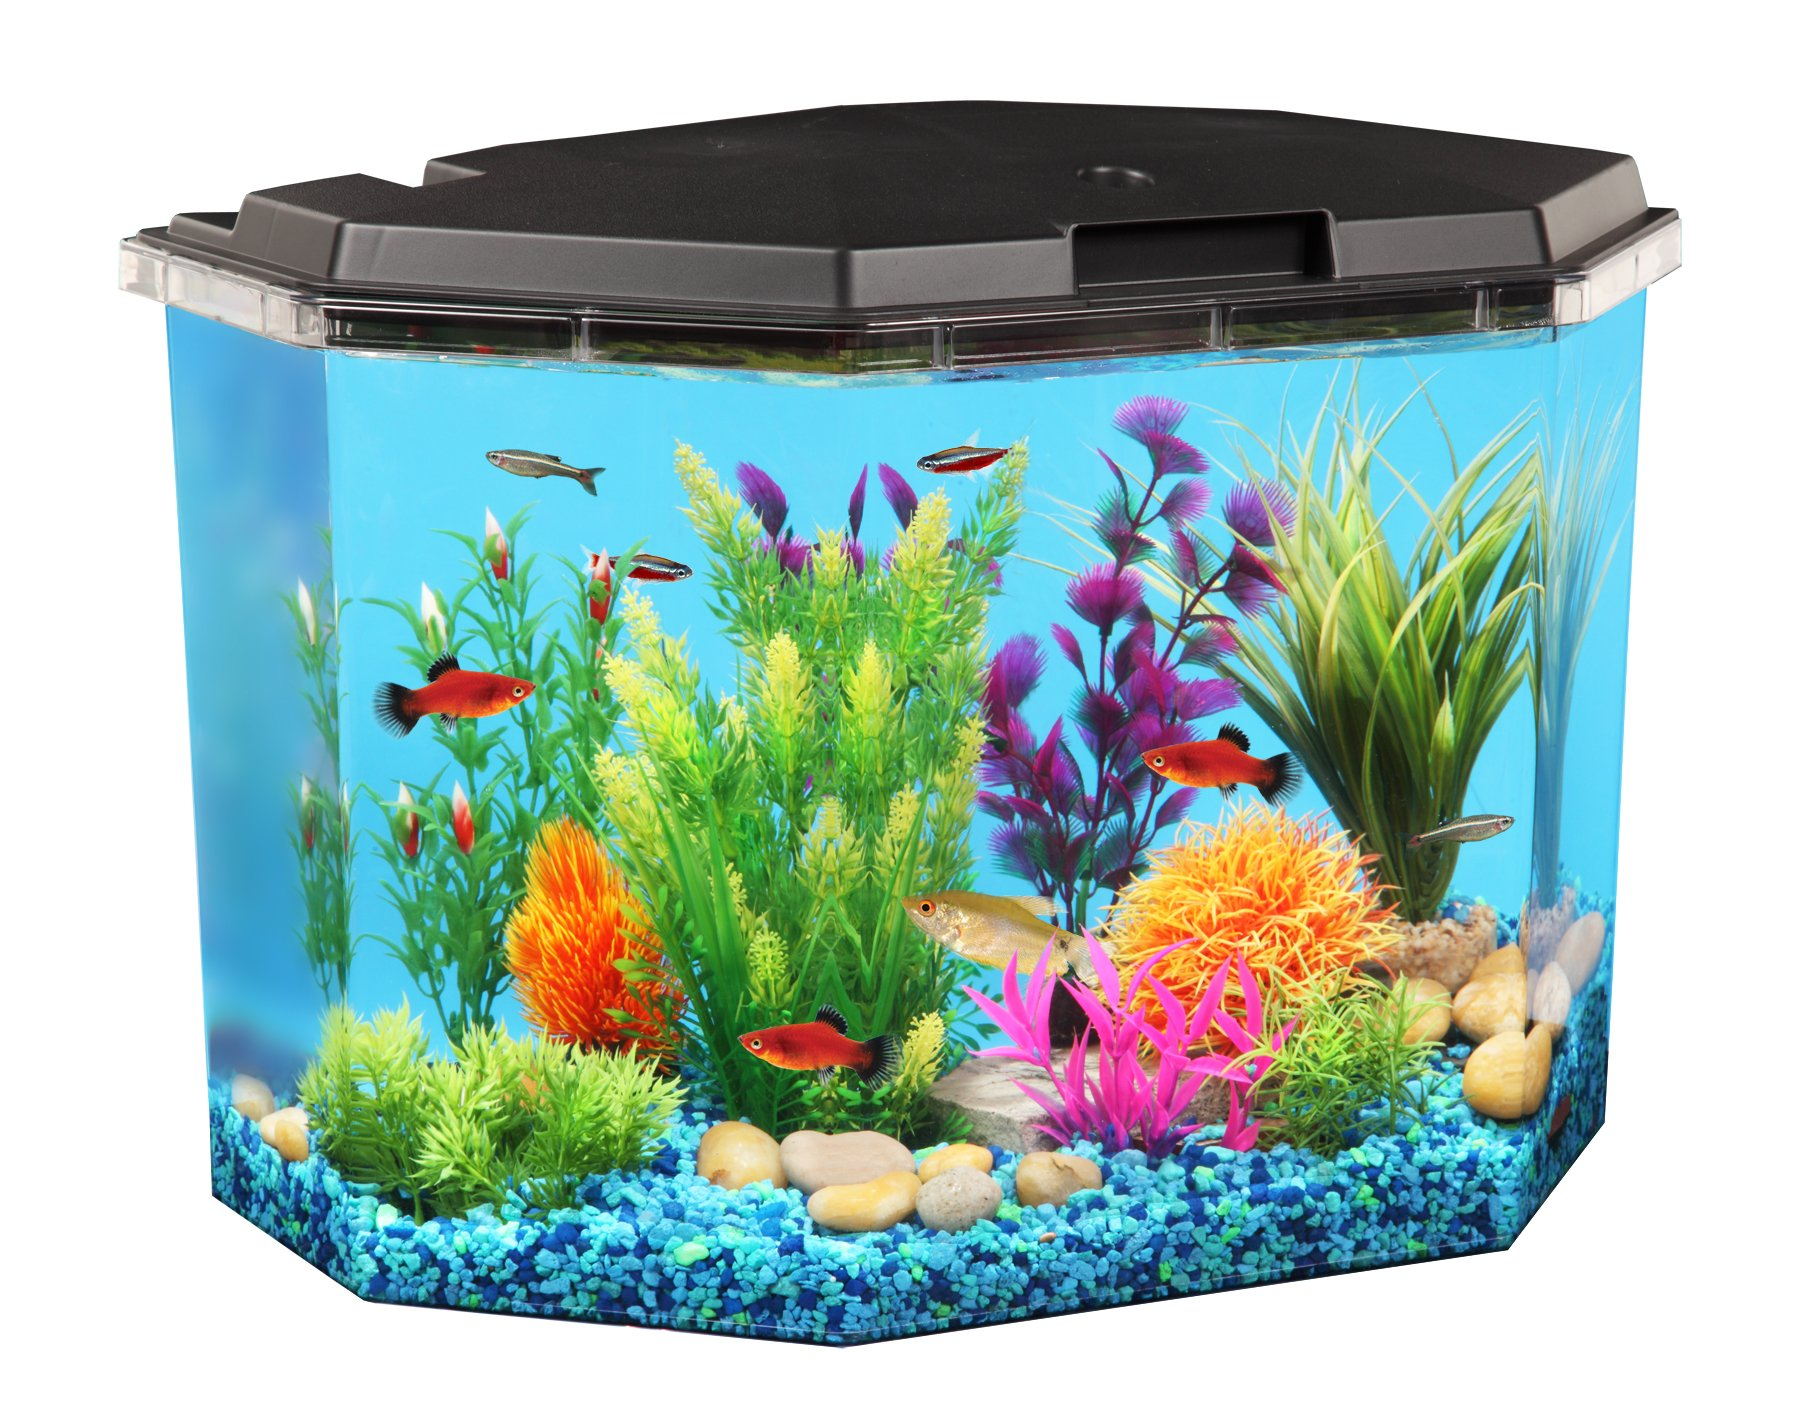 Koller Products 6.5-Gallon Aquarium Kit with Power Filter and LED Lighting, (AP650) by Koller Products